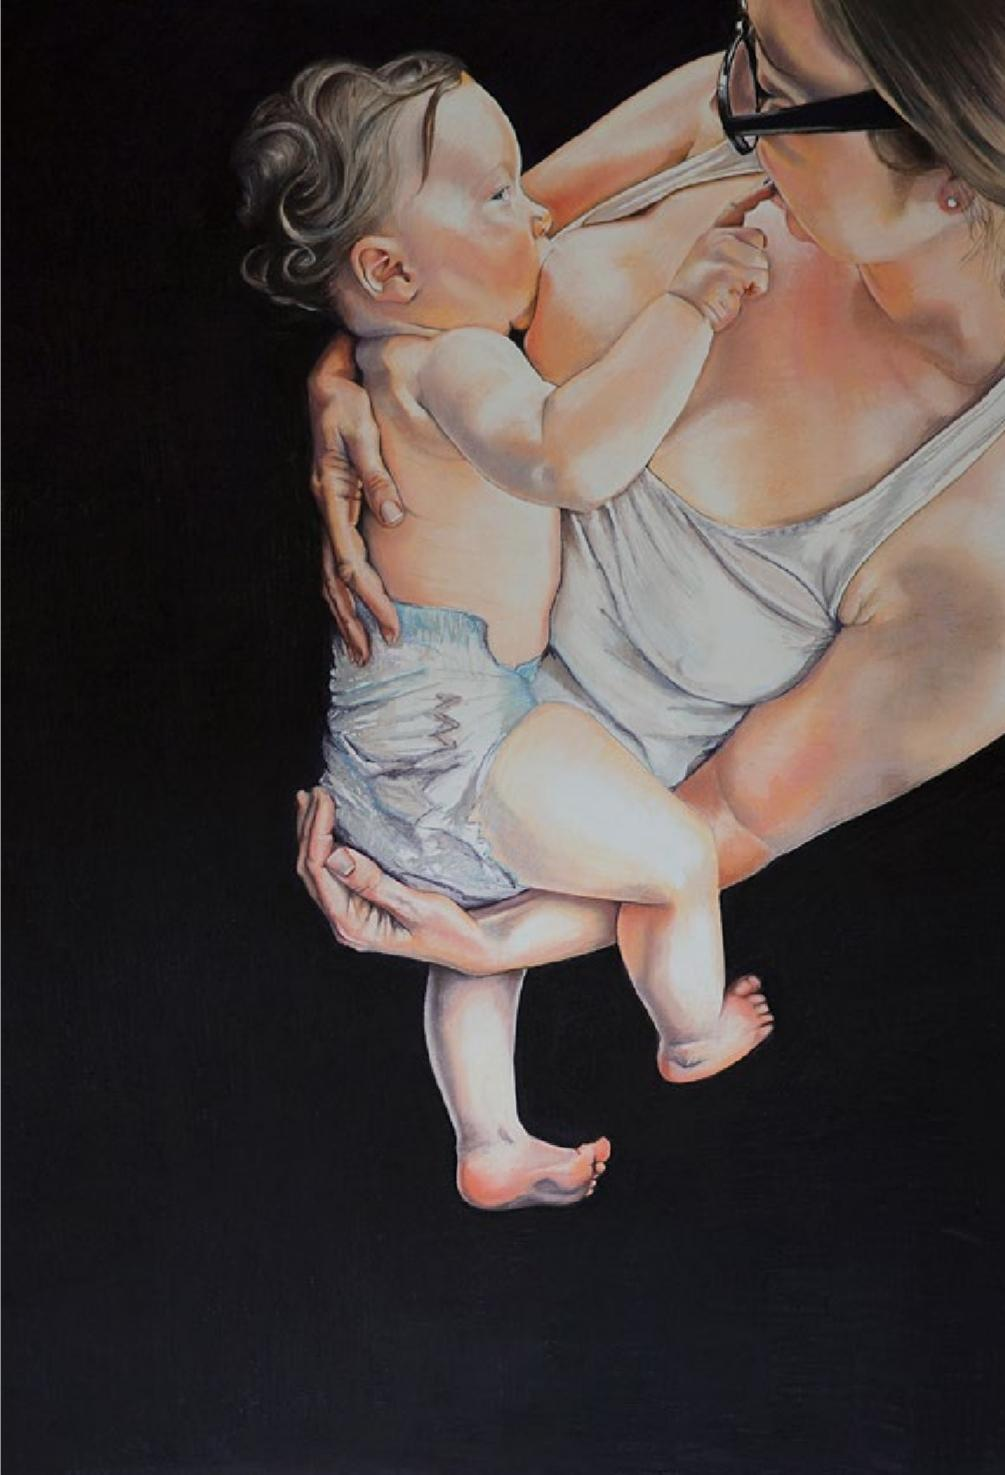 Breastfeed: Portraits with Purpose Exhibition - Programme of Events